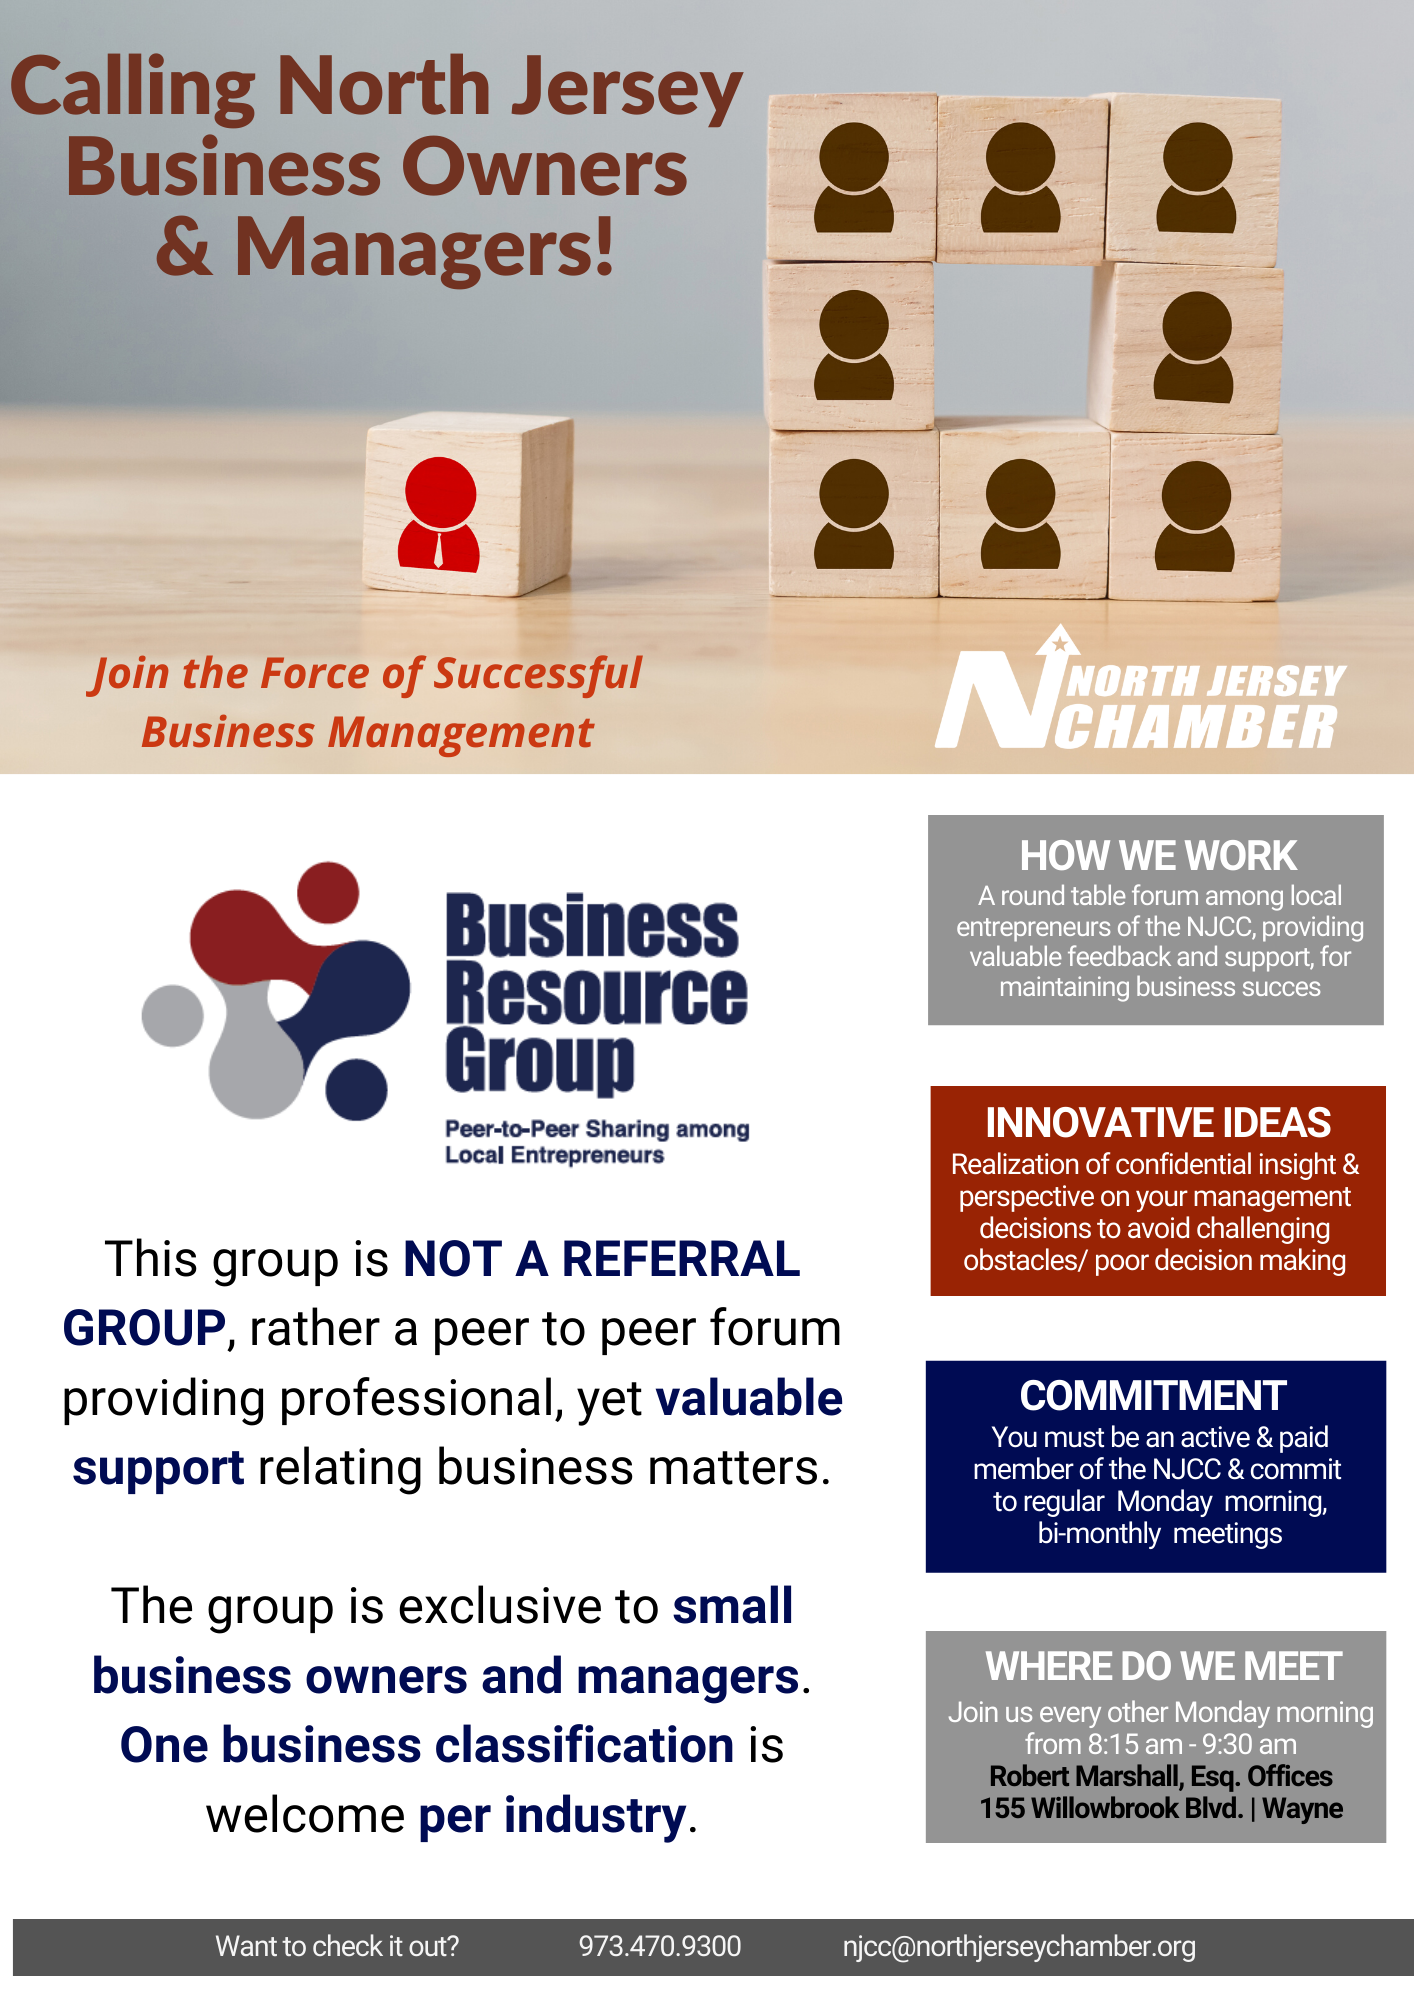 Business Resource Group (BRG) for Business Owners, The North Jersey Chamber of Commerce